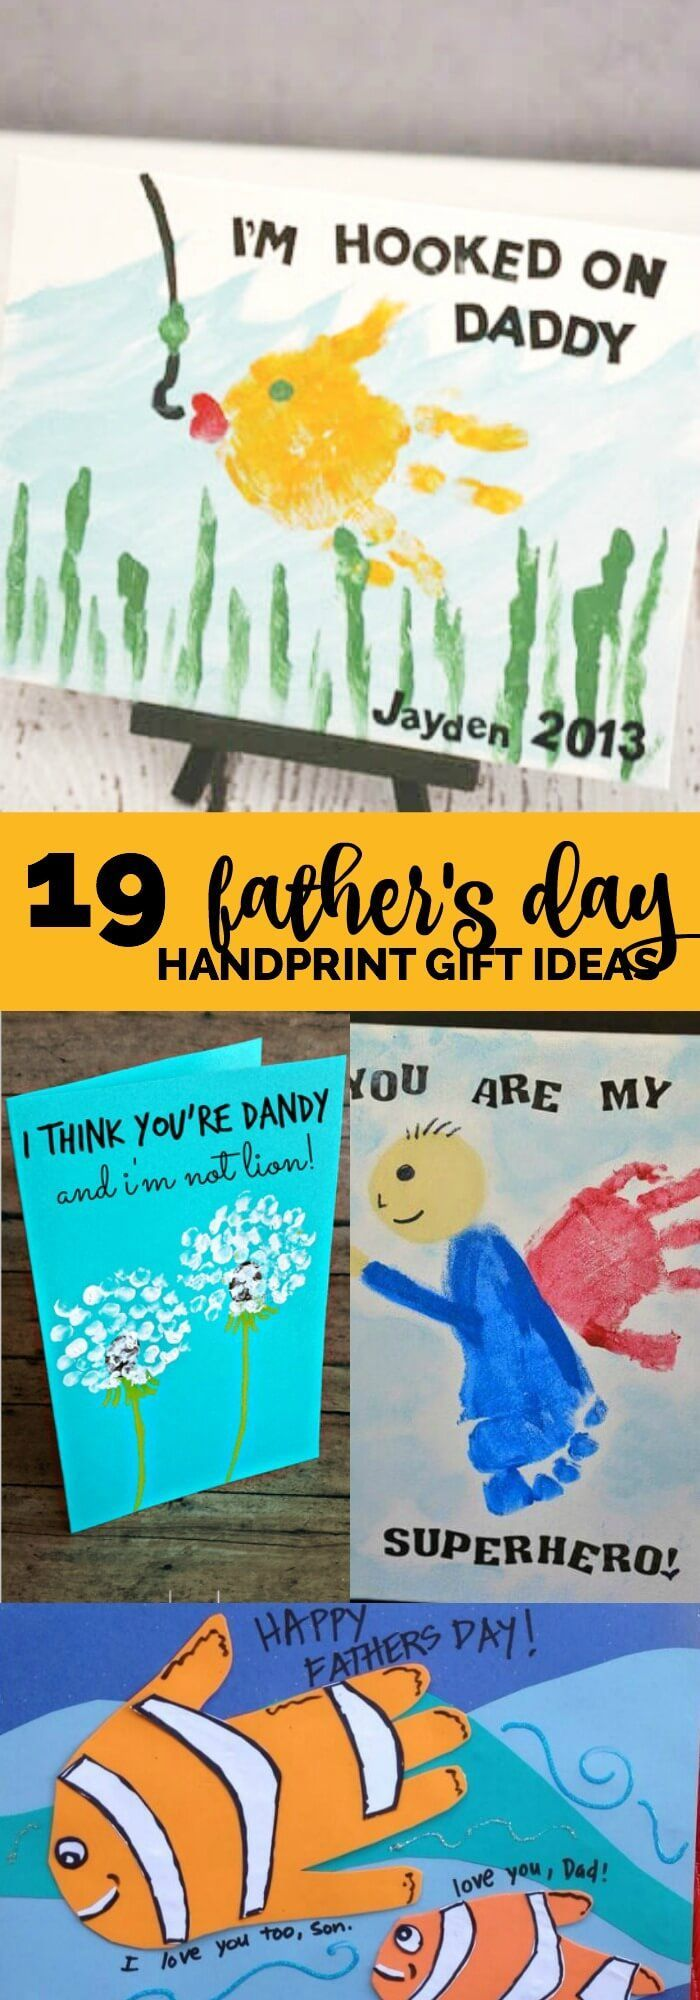 86 best personalized gifts images on pinterest hand made gifts 19 fathers day handprint gift ideas via spaceshipslb negle Gallery